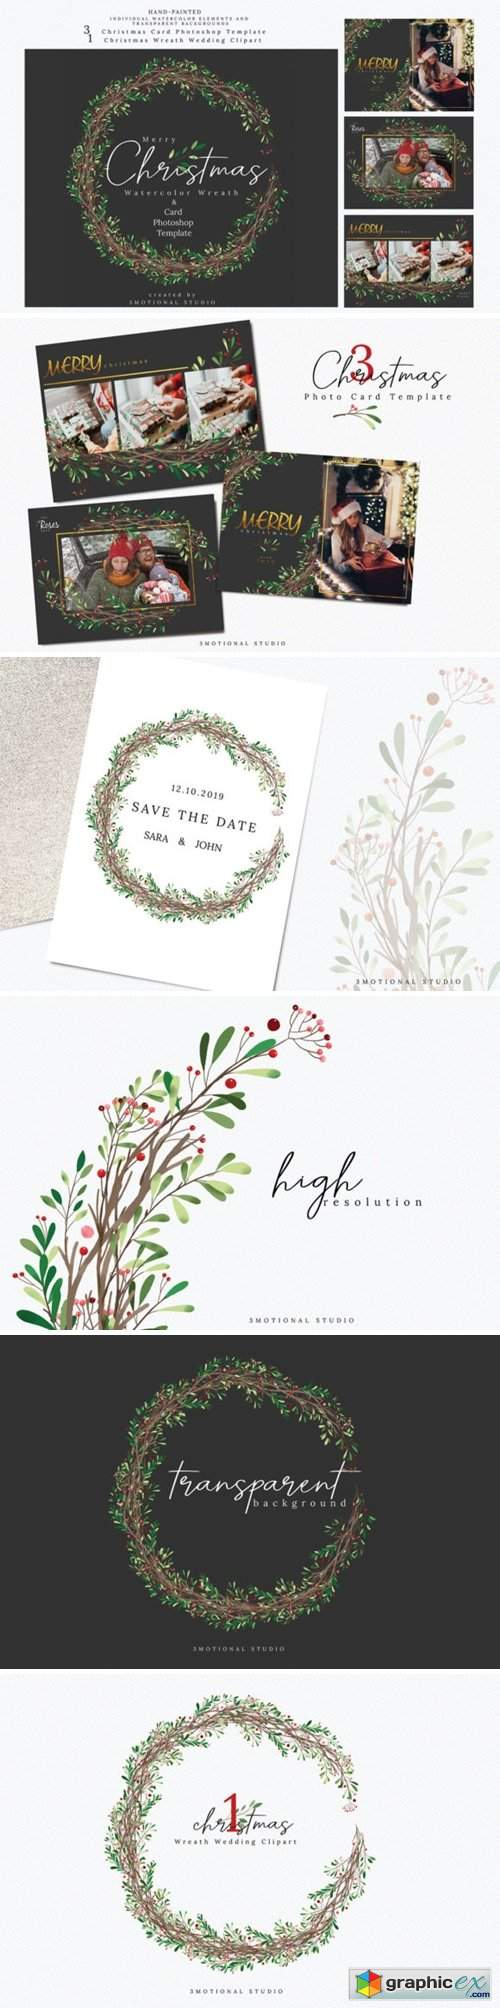 Christmas Photo Card Mockup Template